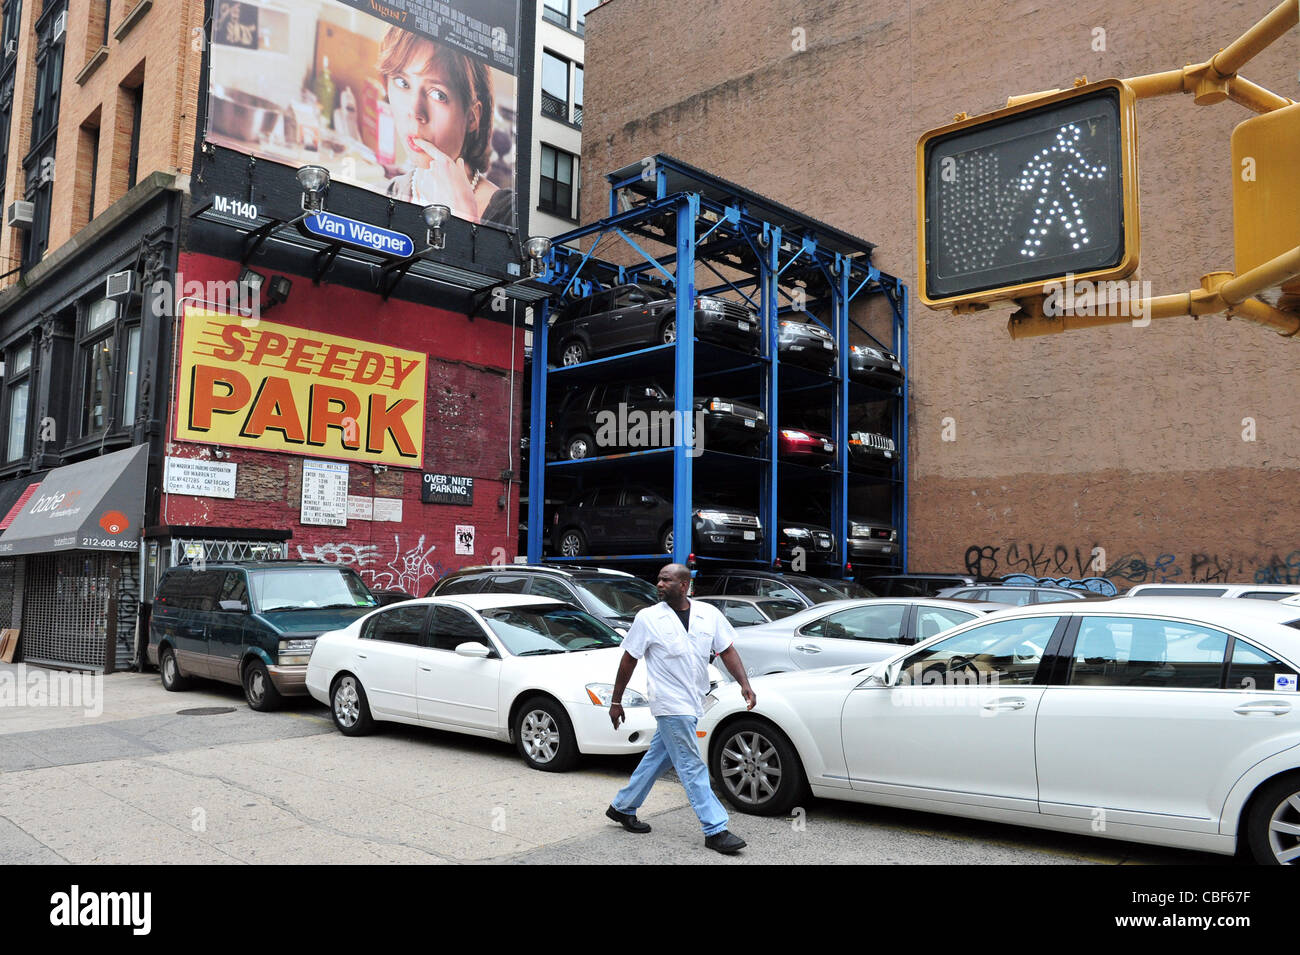 New York City Multi Story Automated Parking Lots Filled With Cars